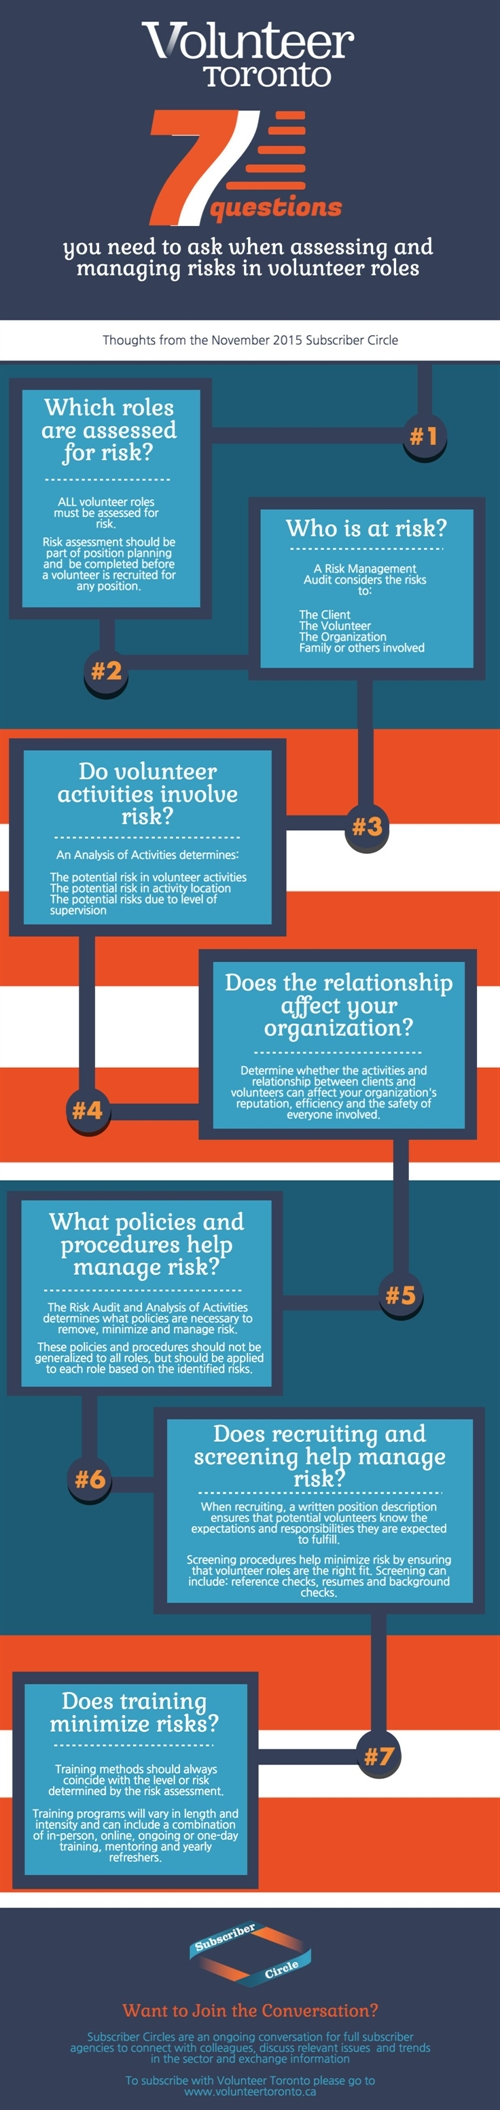 infographic - 7 Questions You Need To Ask When Assessing and Managing Risks In Your Volunteer Roles